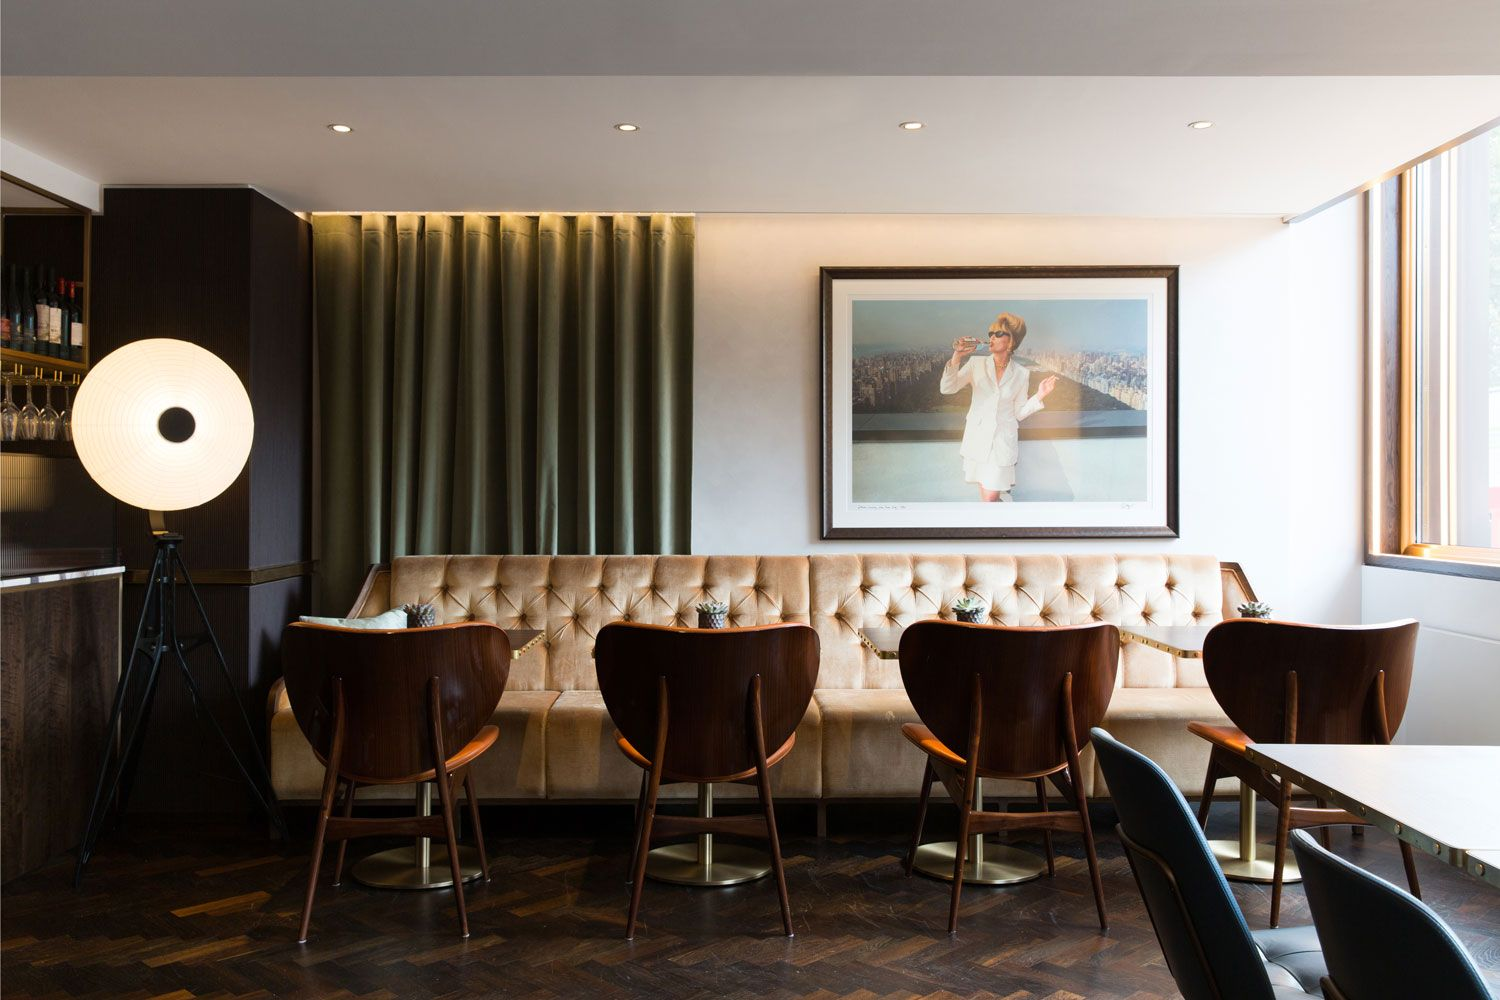 athenaeum hotel residences by kinnersley kent design - Multi Restaurant Design